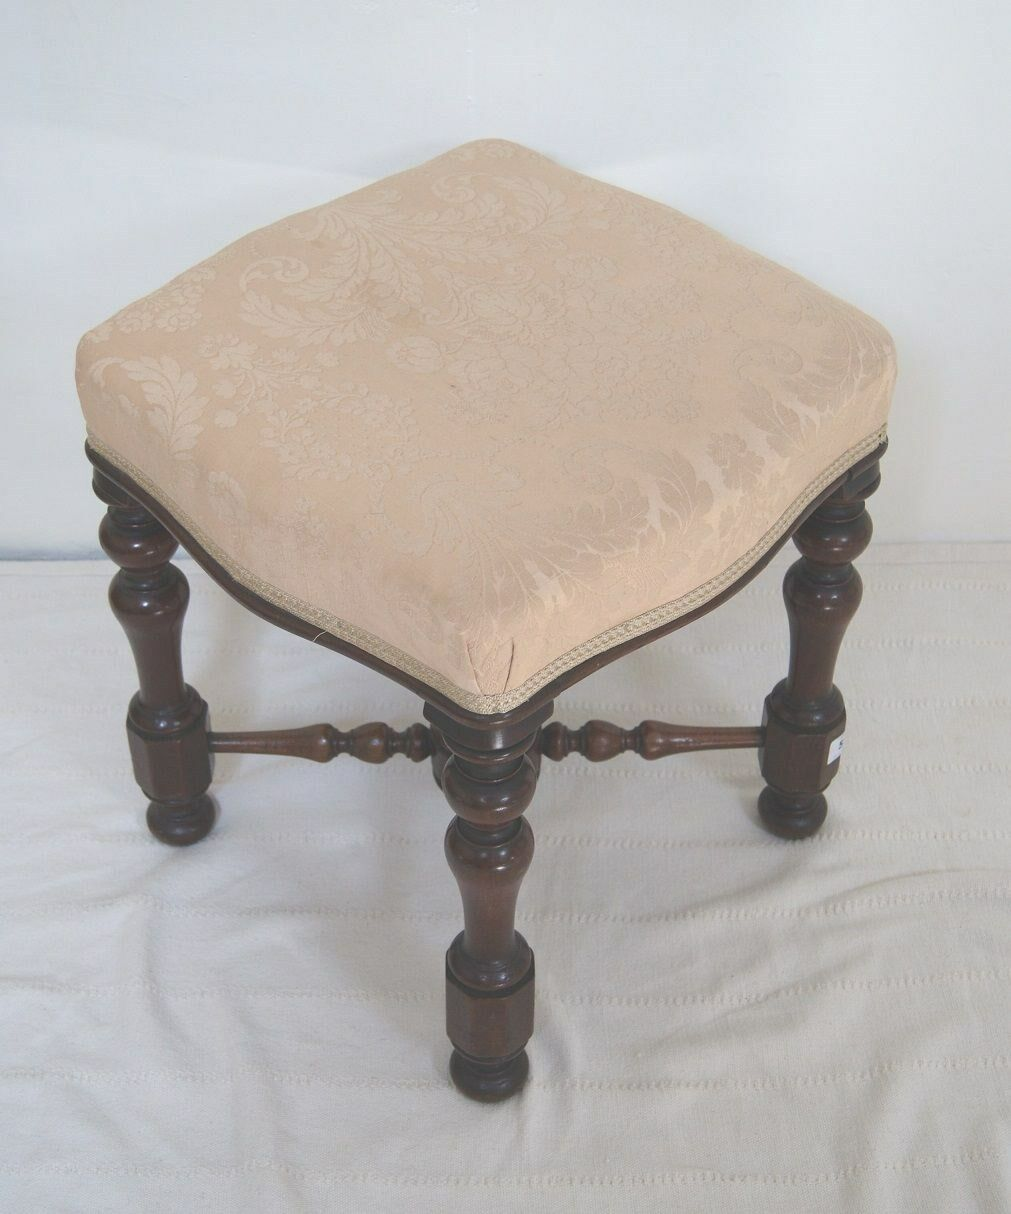 Smart, Antique Victorian Wooden Square Foot Stool with Cream Upholstered Seat